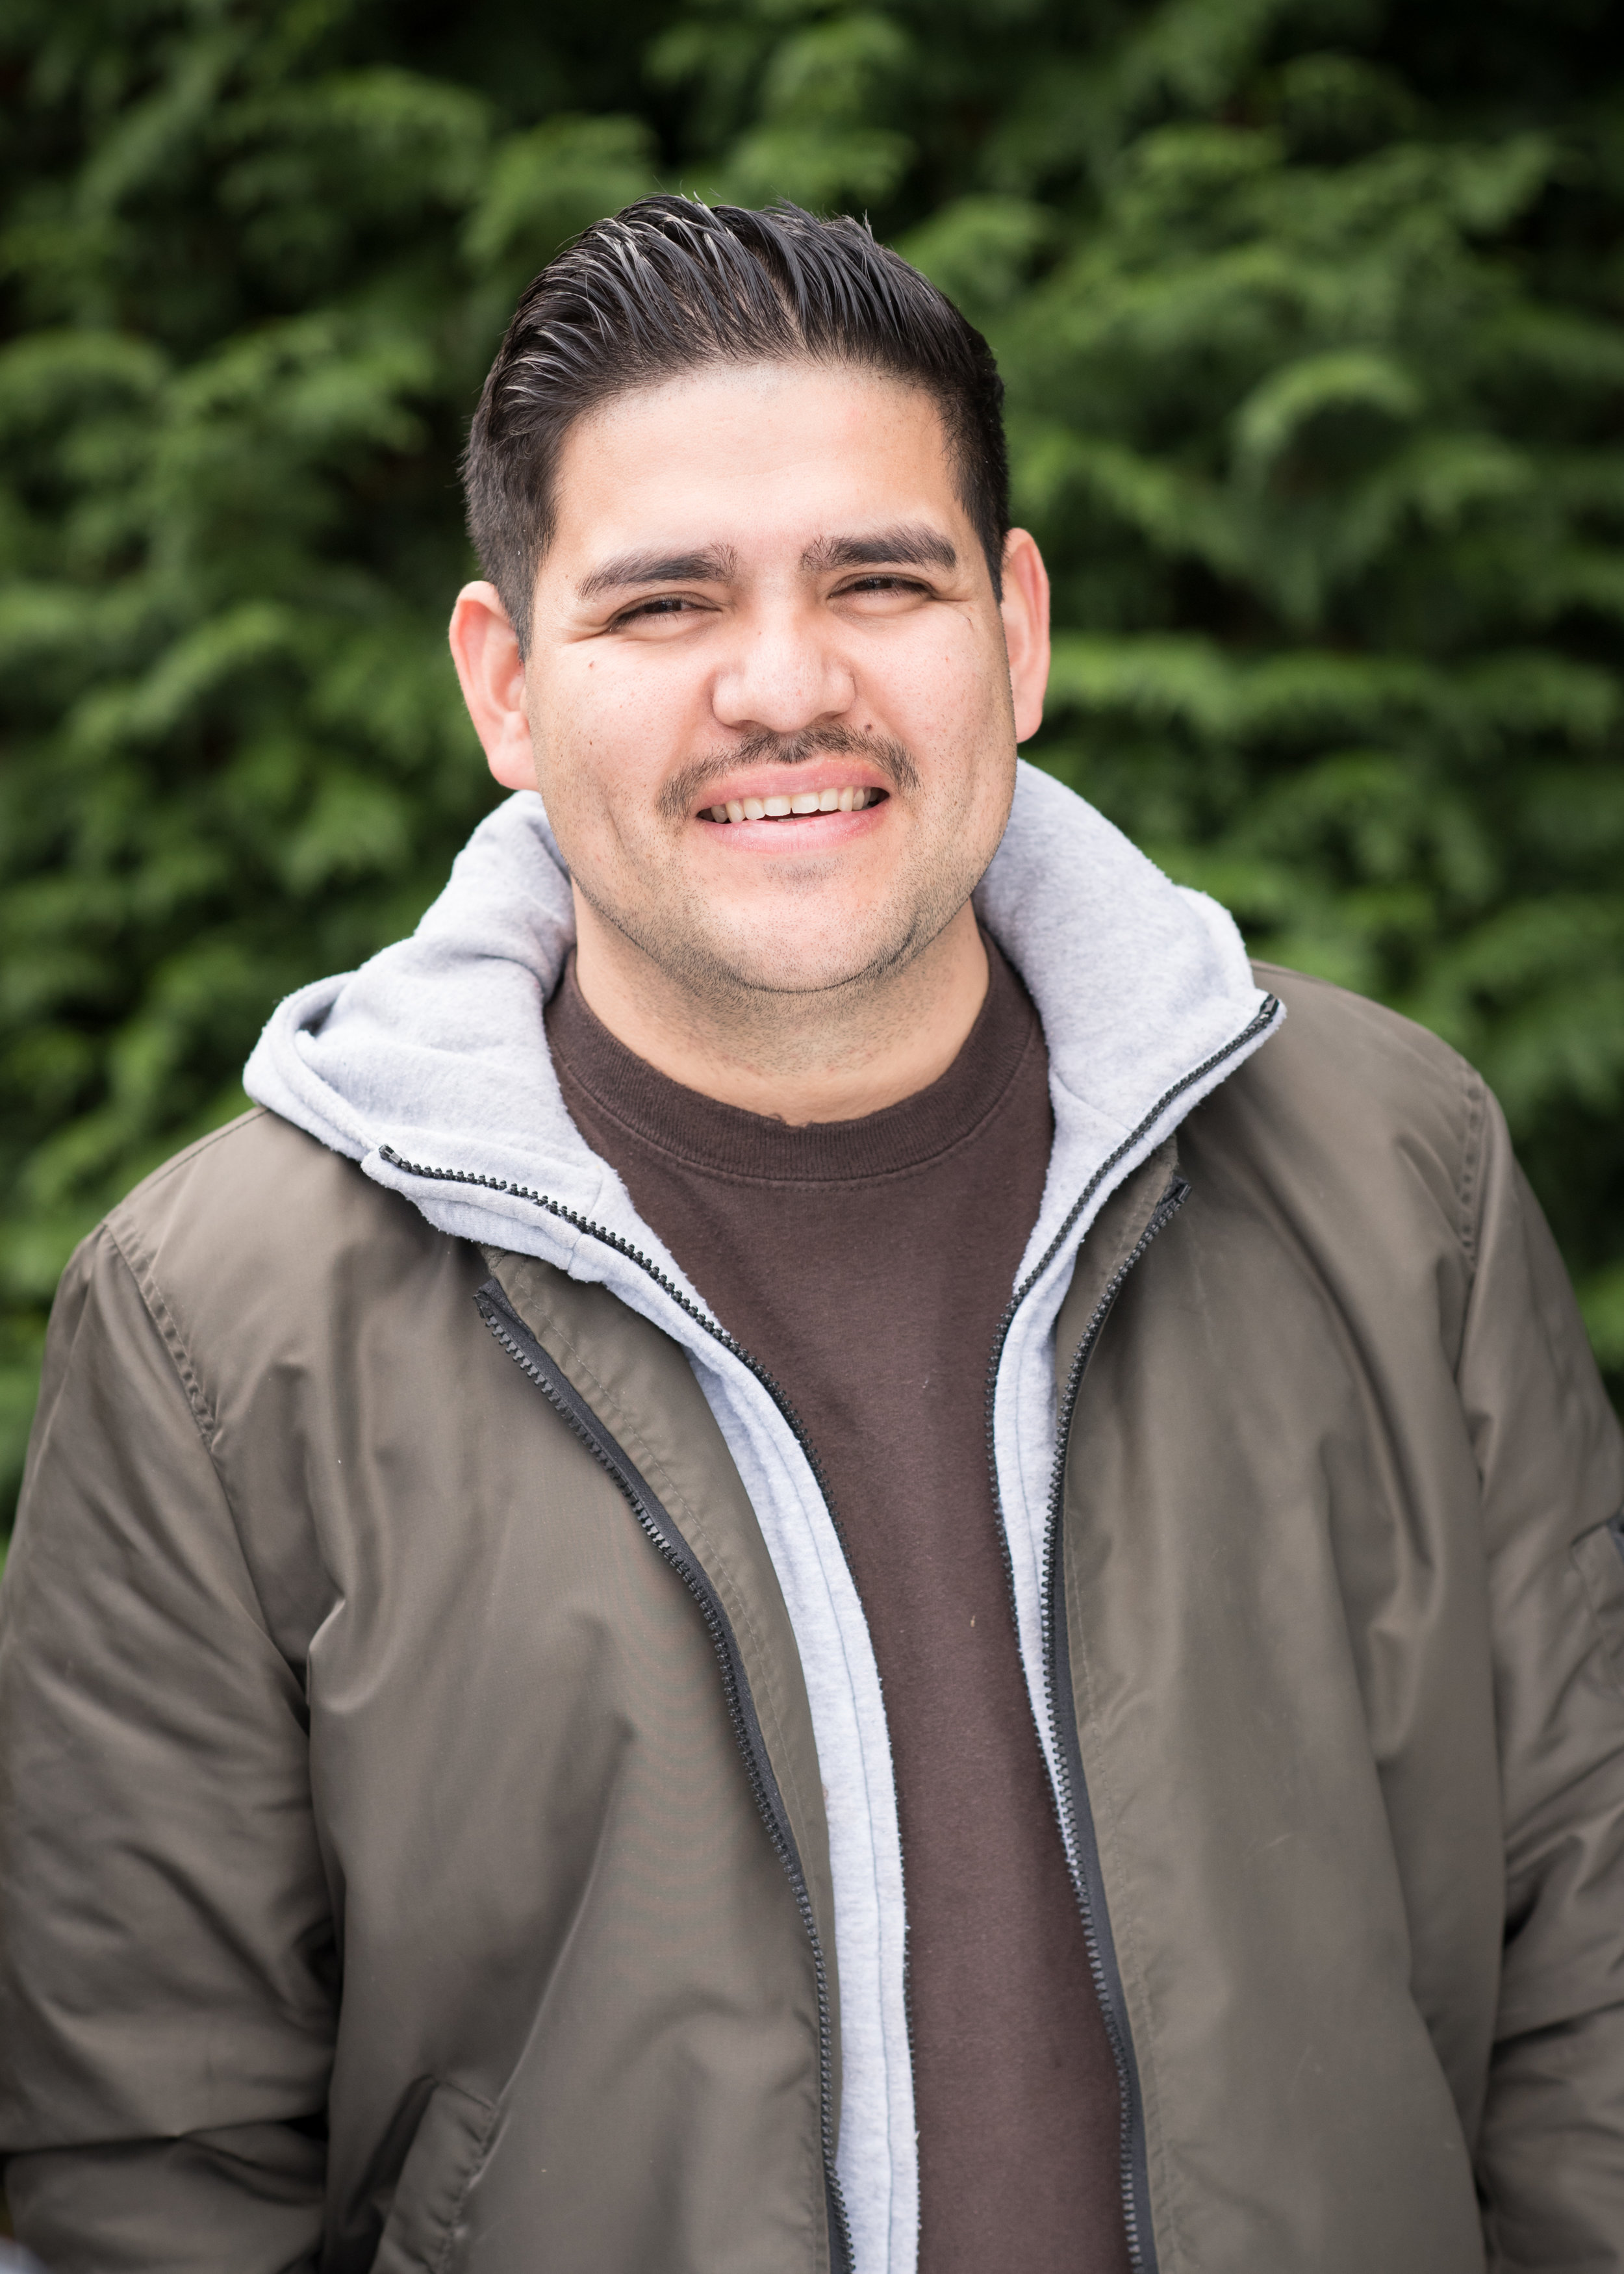 Jose Espino, Member Services Manager